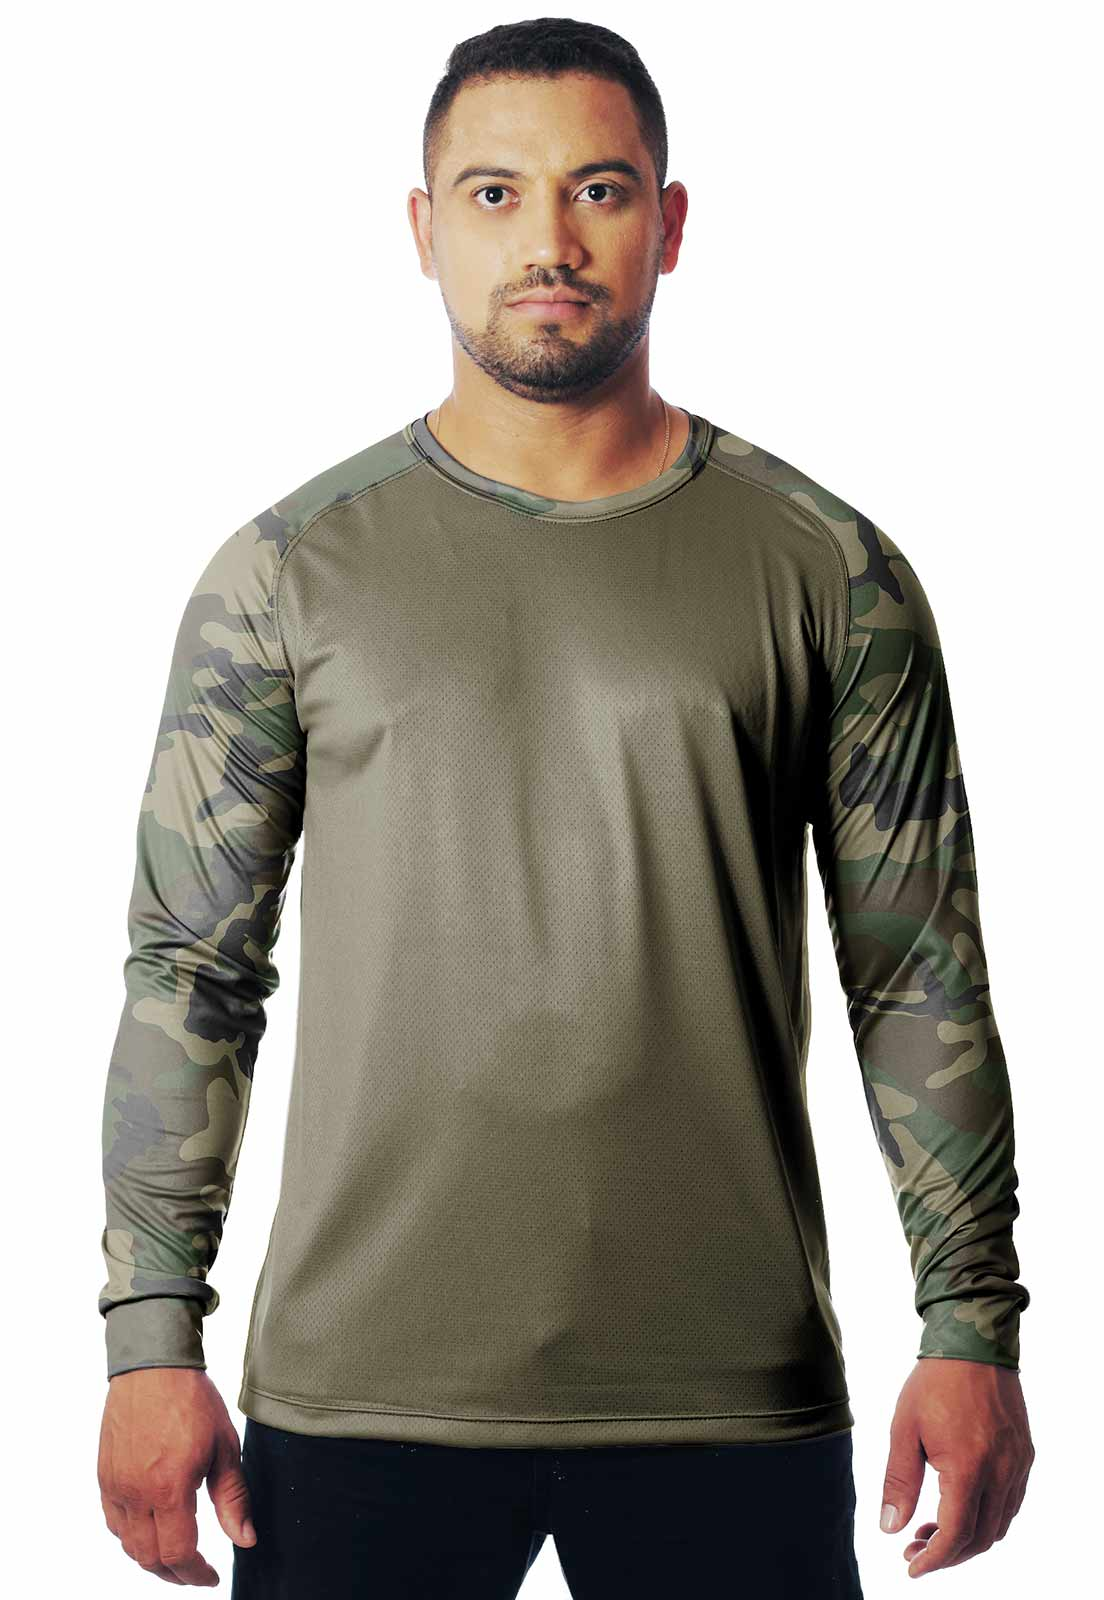 CAMISETA CAMUFLADA WOODLAND LAZER 22 MANGA LONGA MASCULINA  - REAL HUNTER OUTDOORS